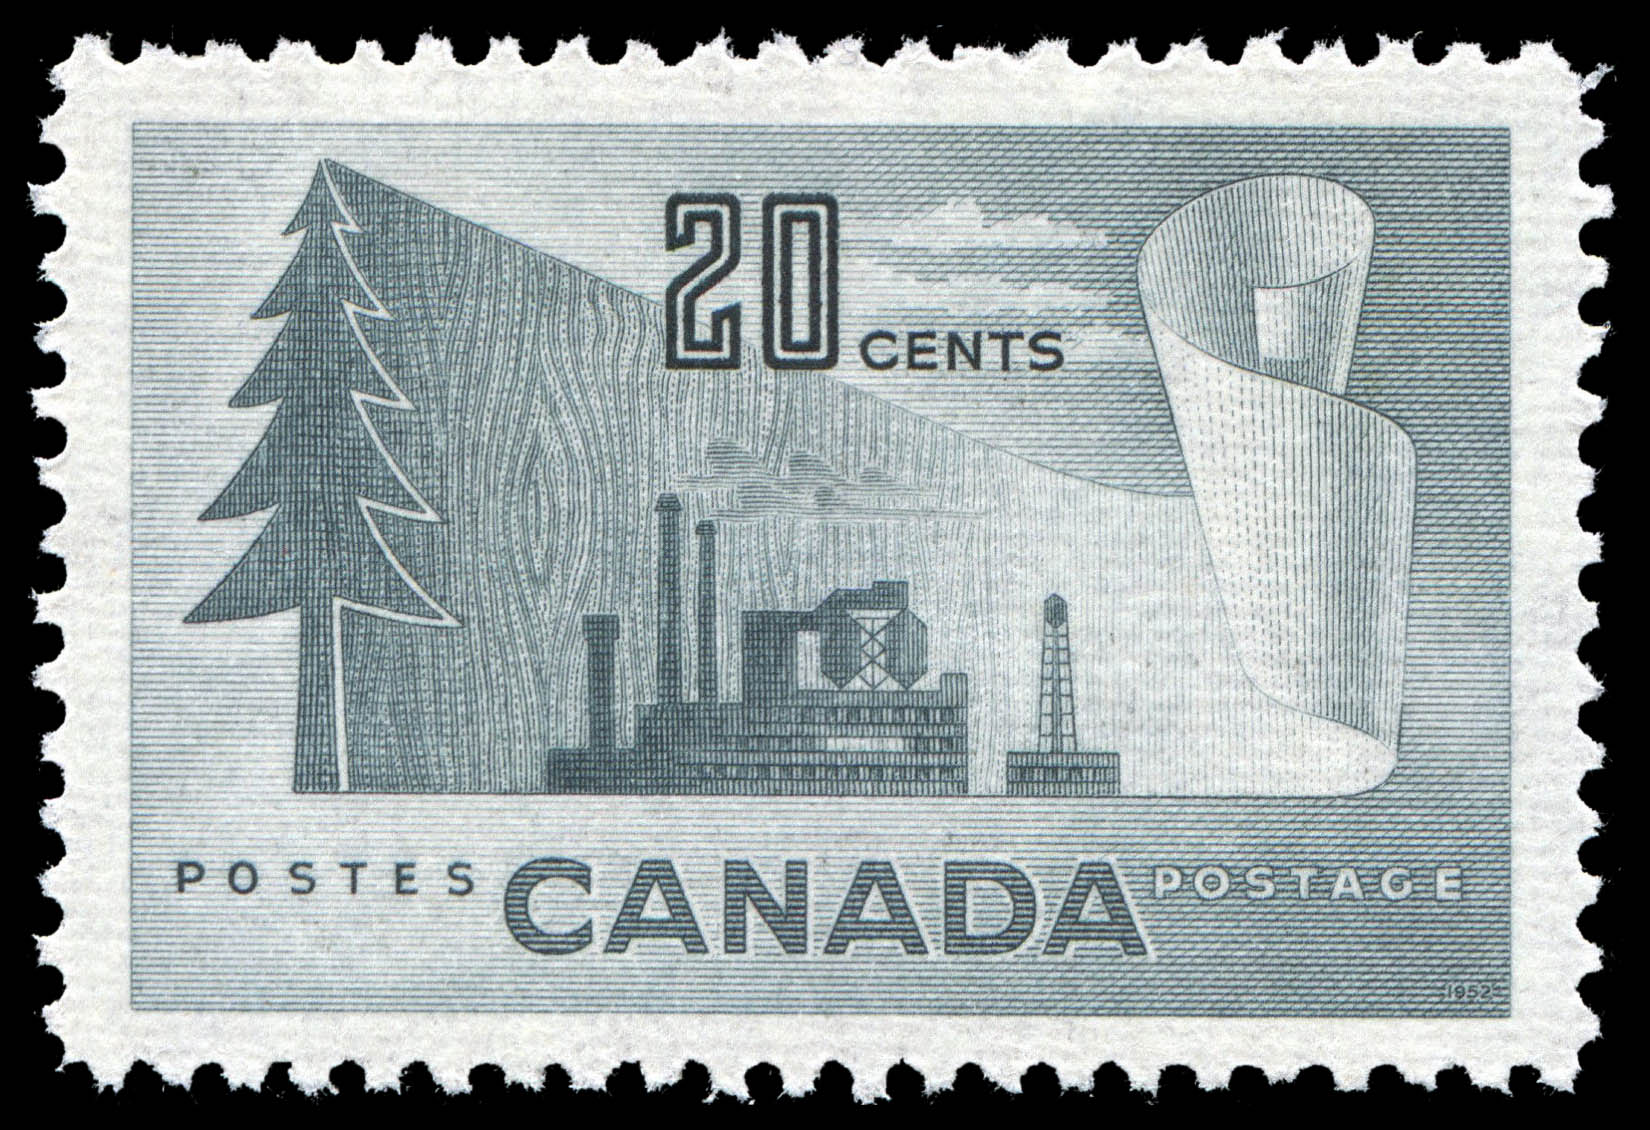 Forestry Products of Canada Canada Postage Stamp